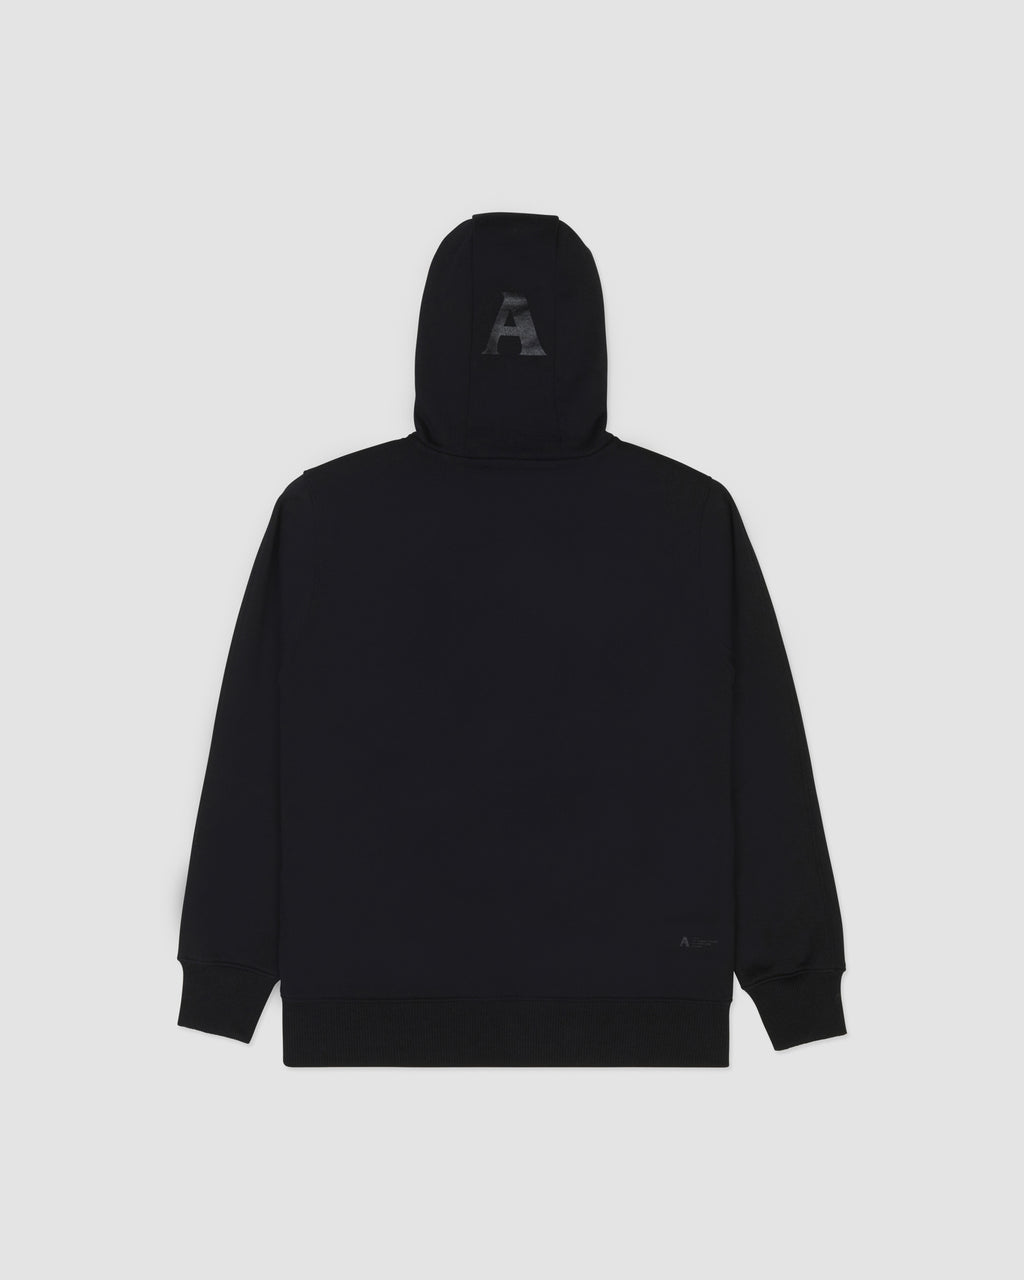 A LOGO HOODED SWEATSHIRT